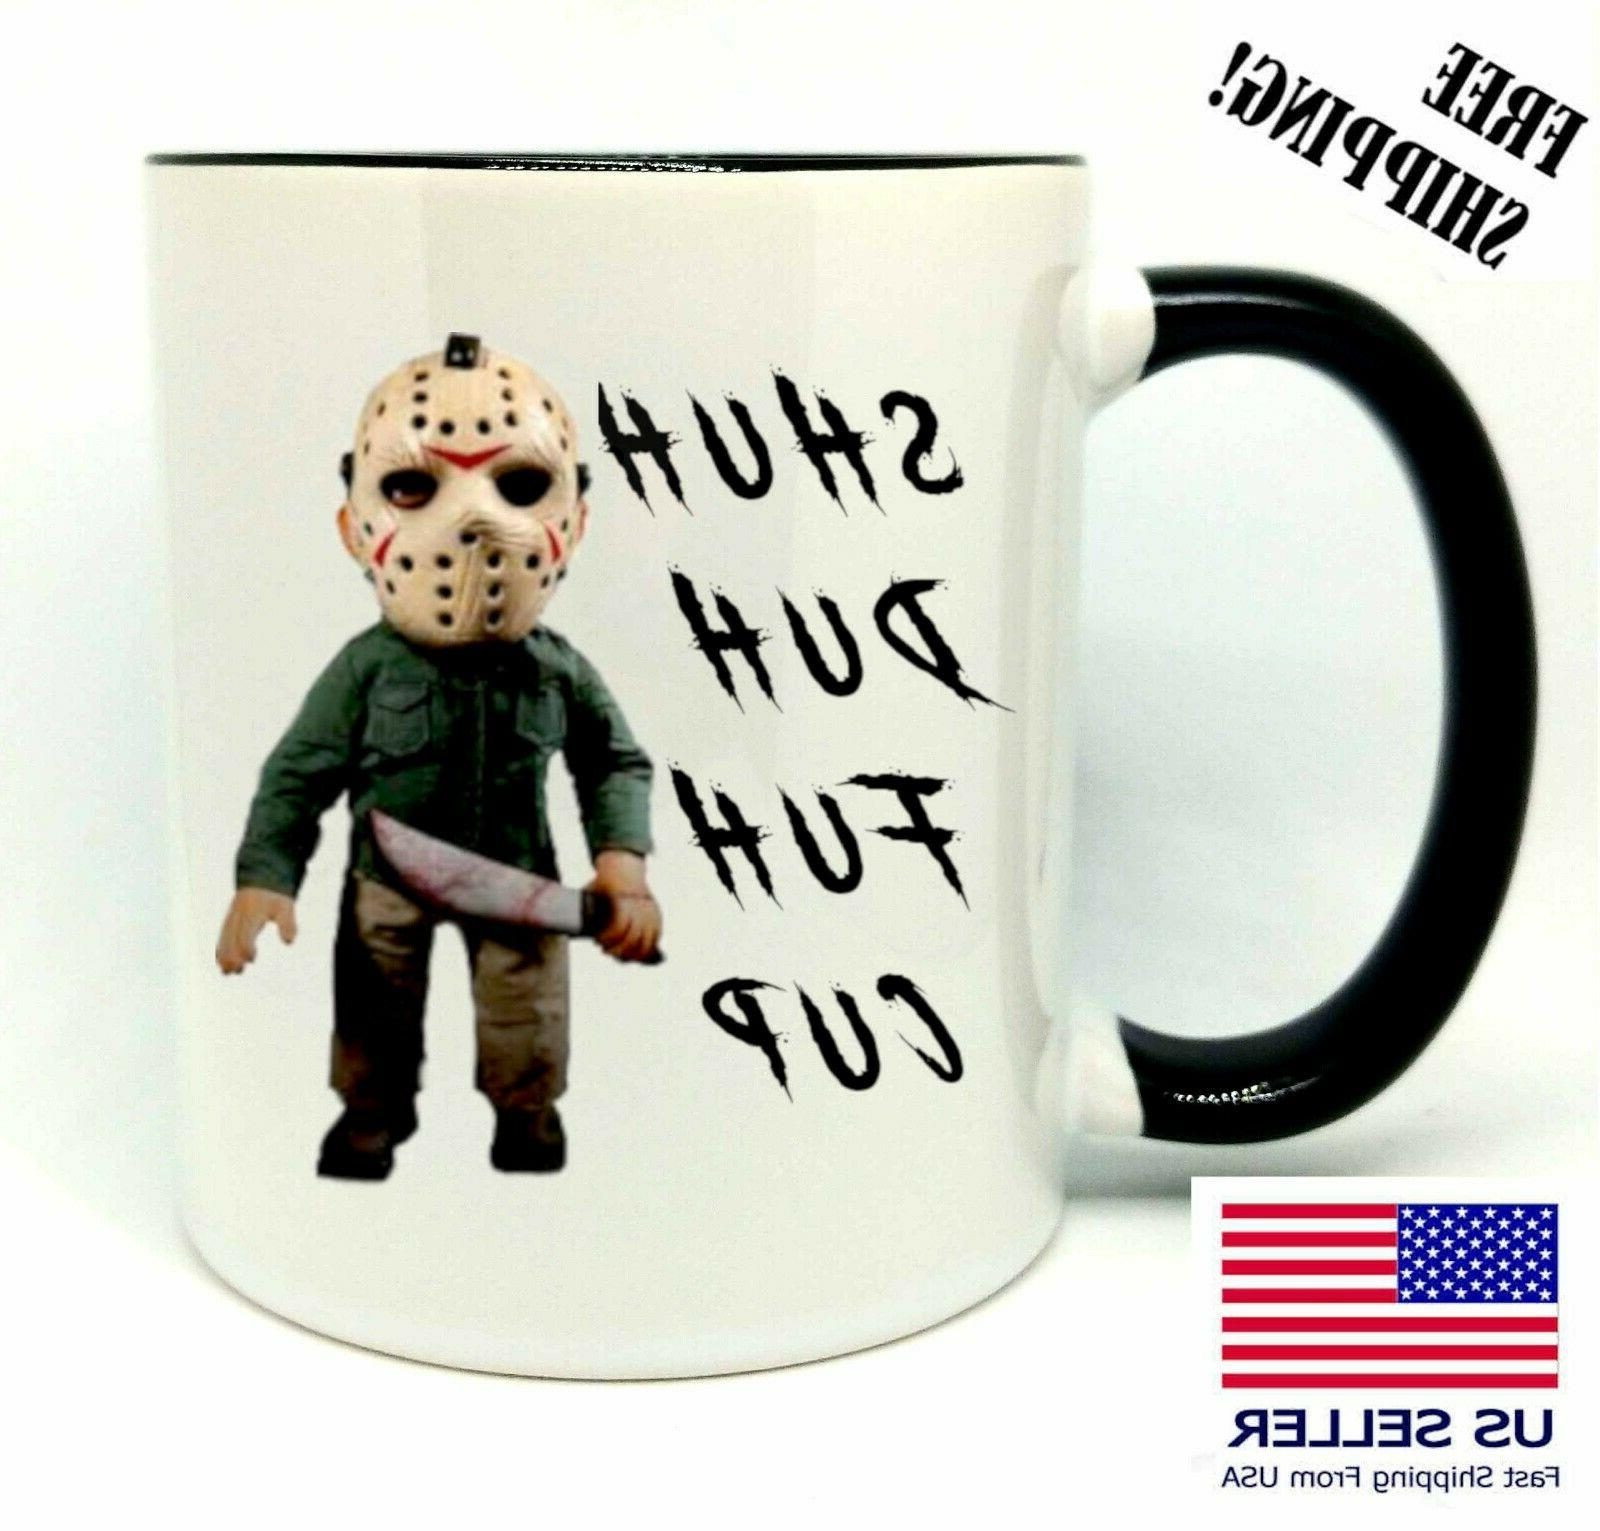 shuh duh fuh cup jason voorhees friday